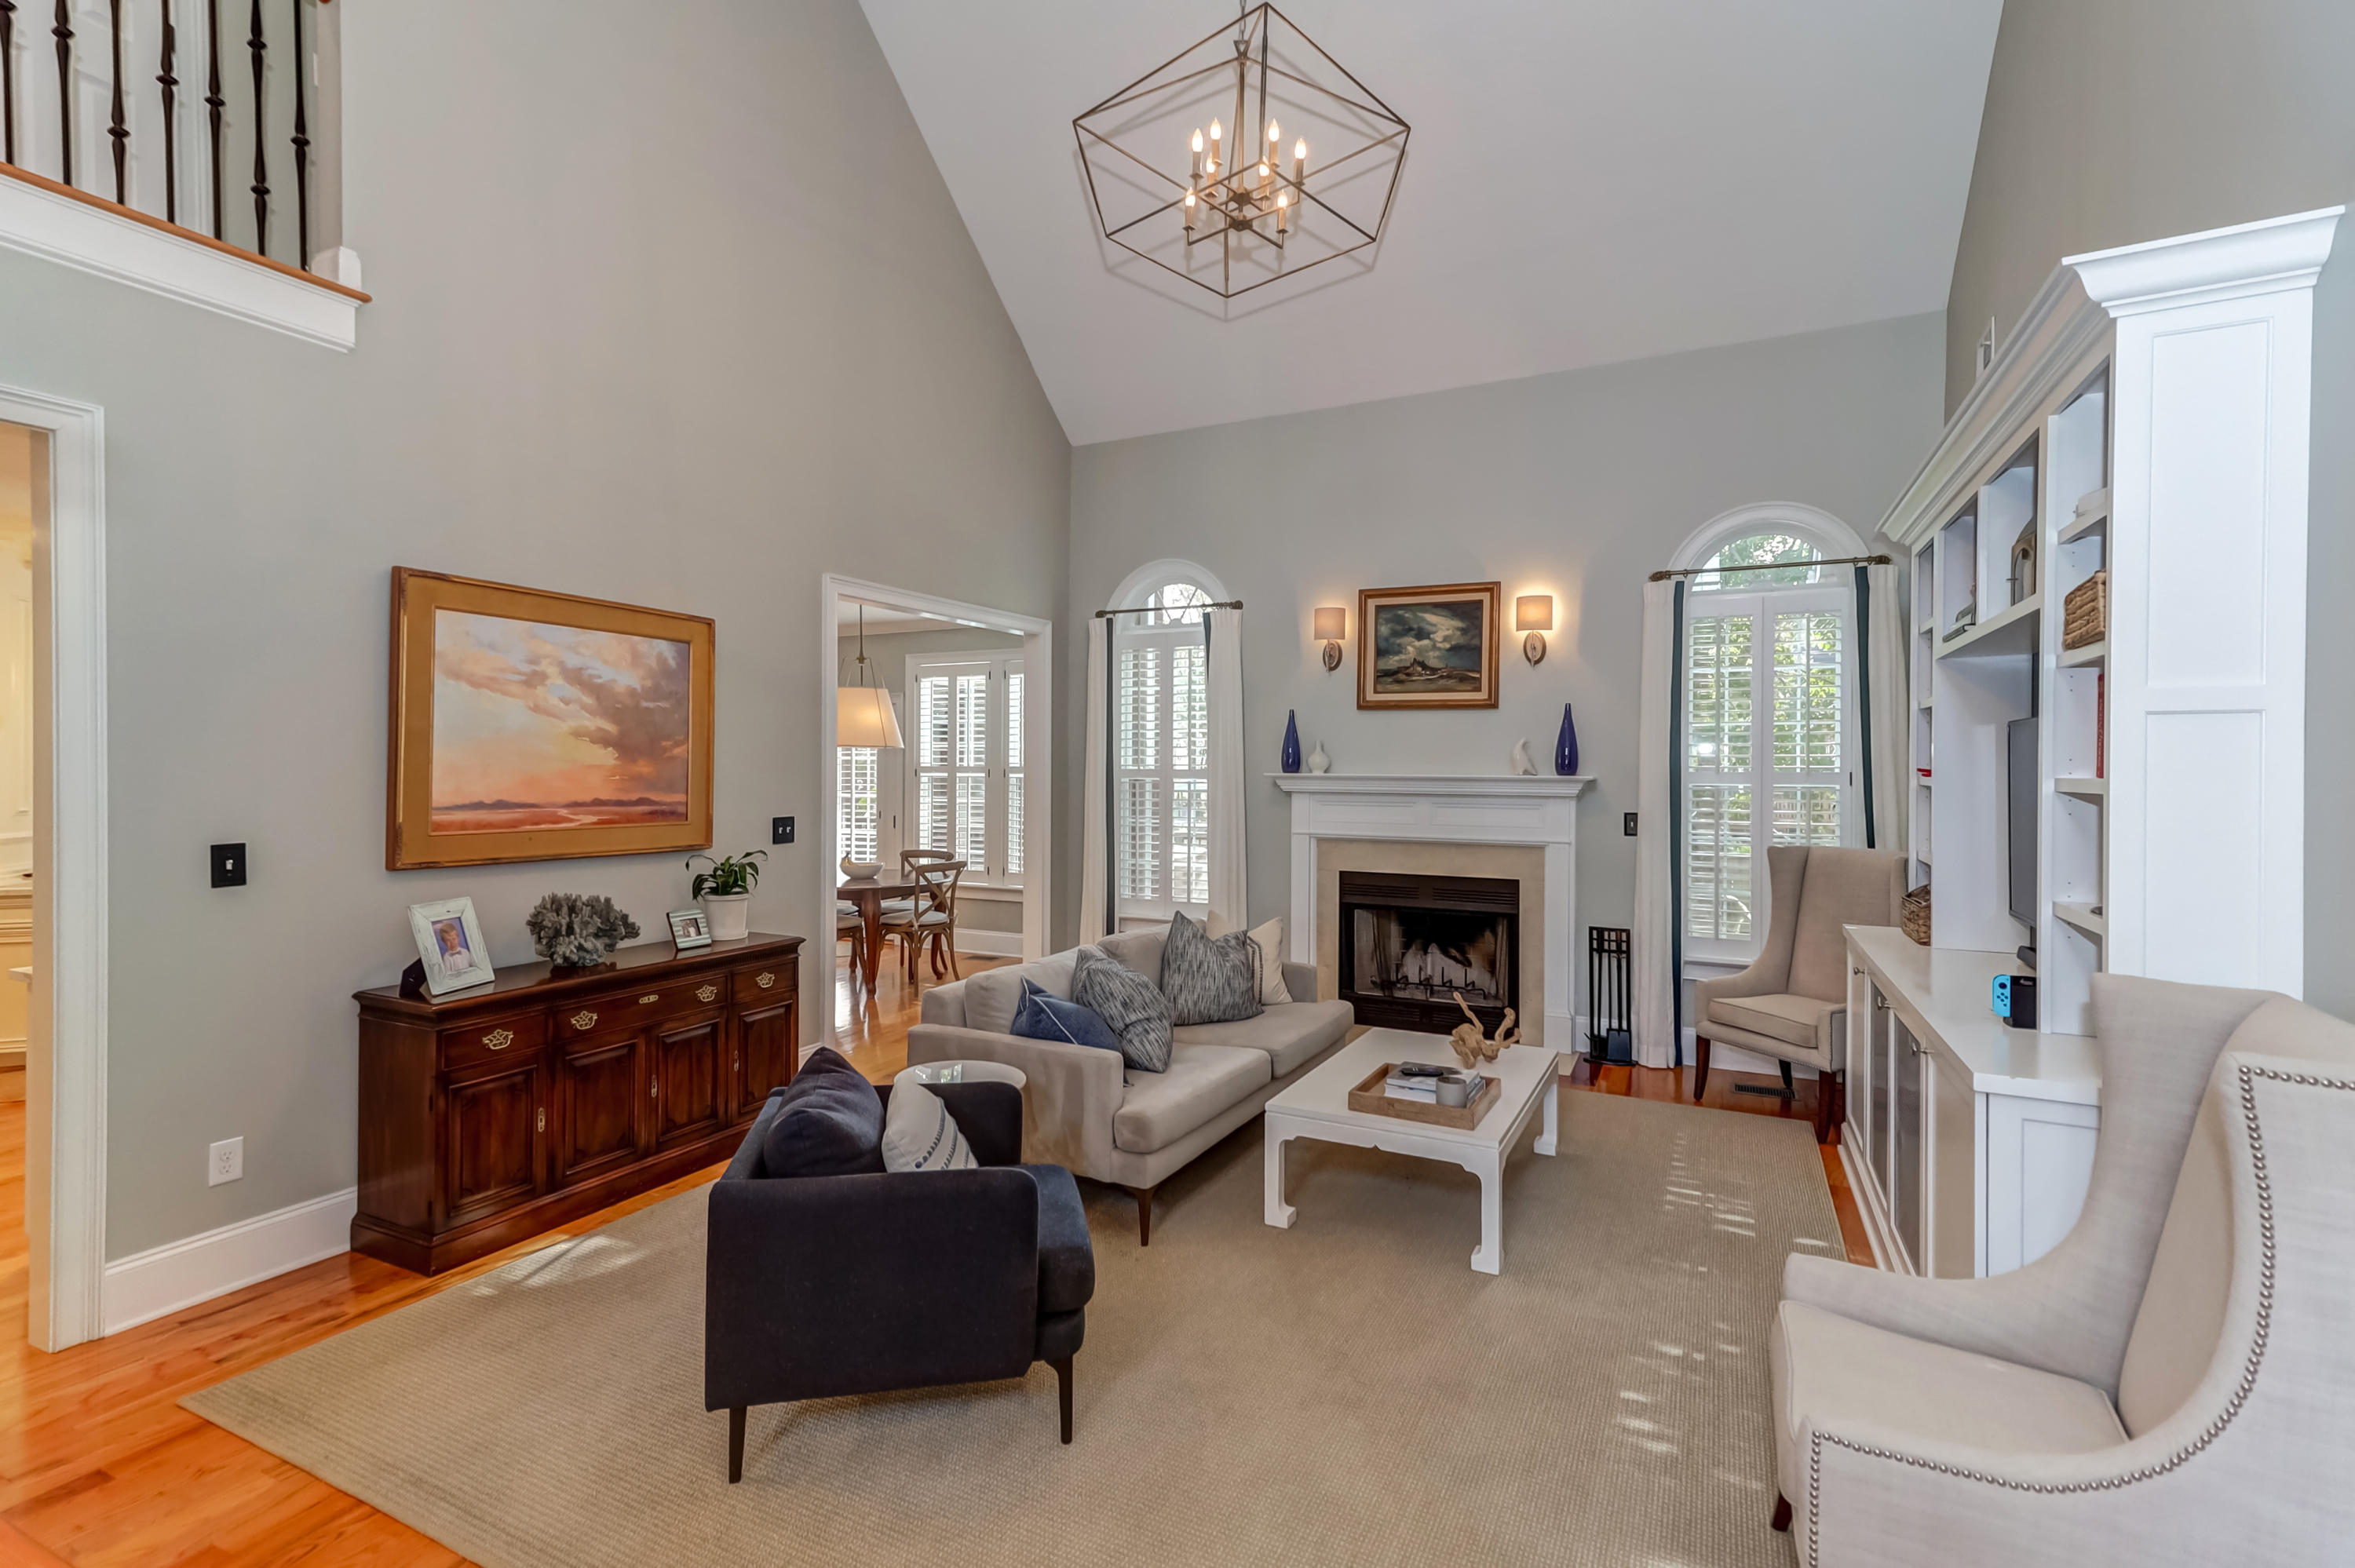 Woodward Pointe Homes For Sale - 657 White Chapel, Charleston, SC - 51